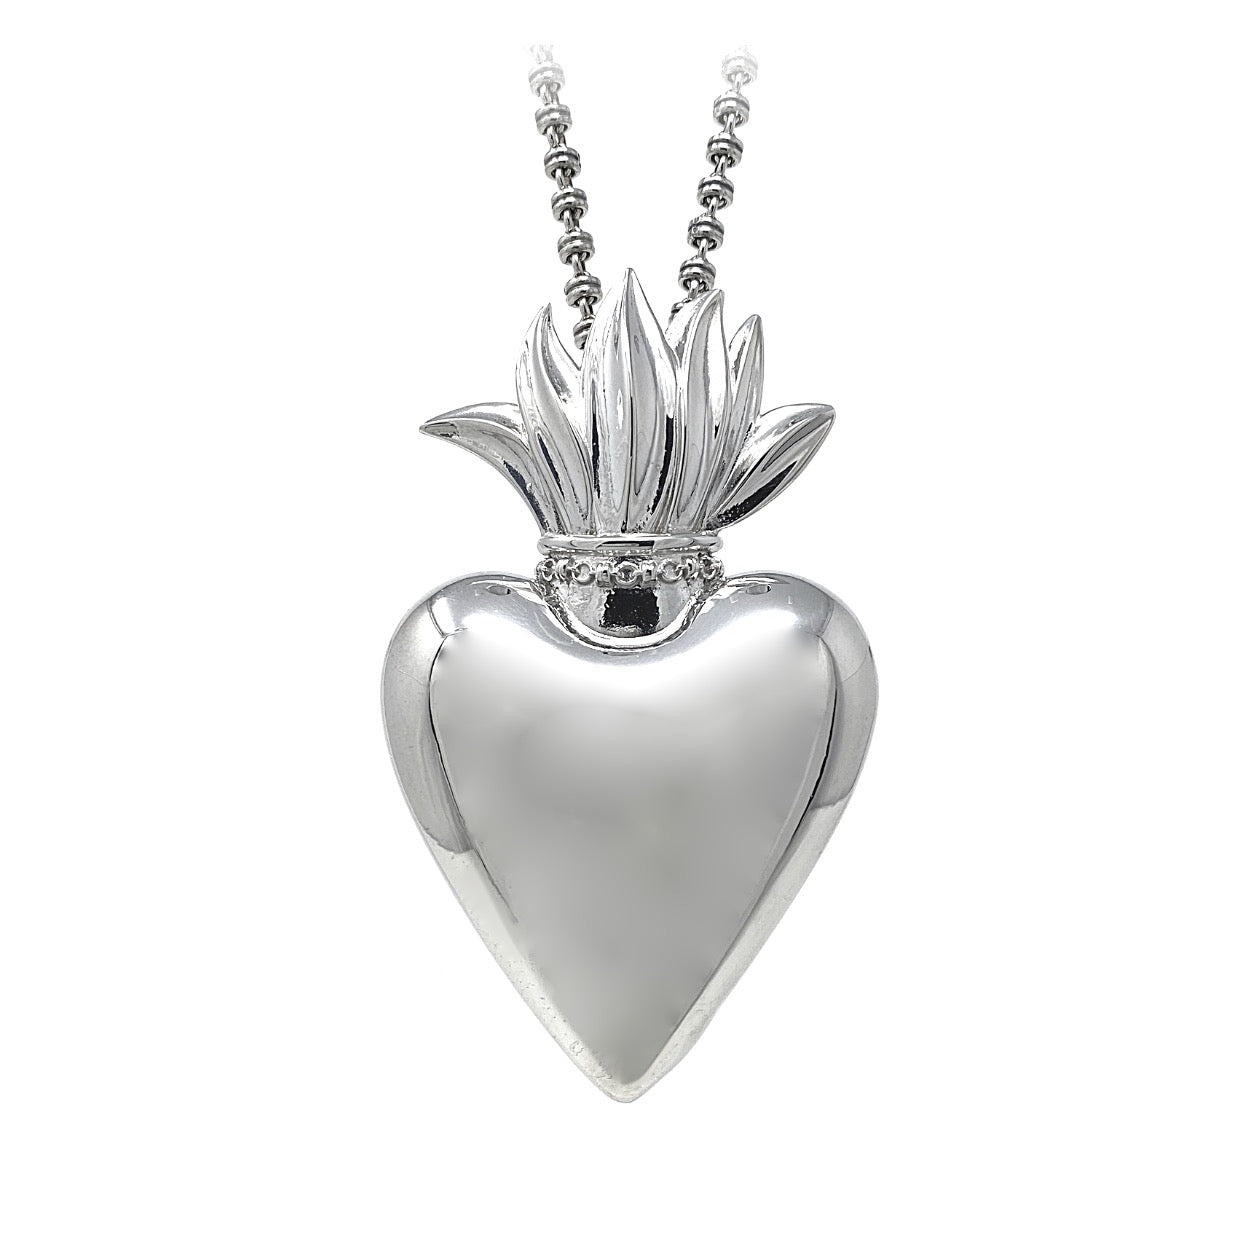 Large Flaming Heart Pendant in Silver